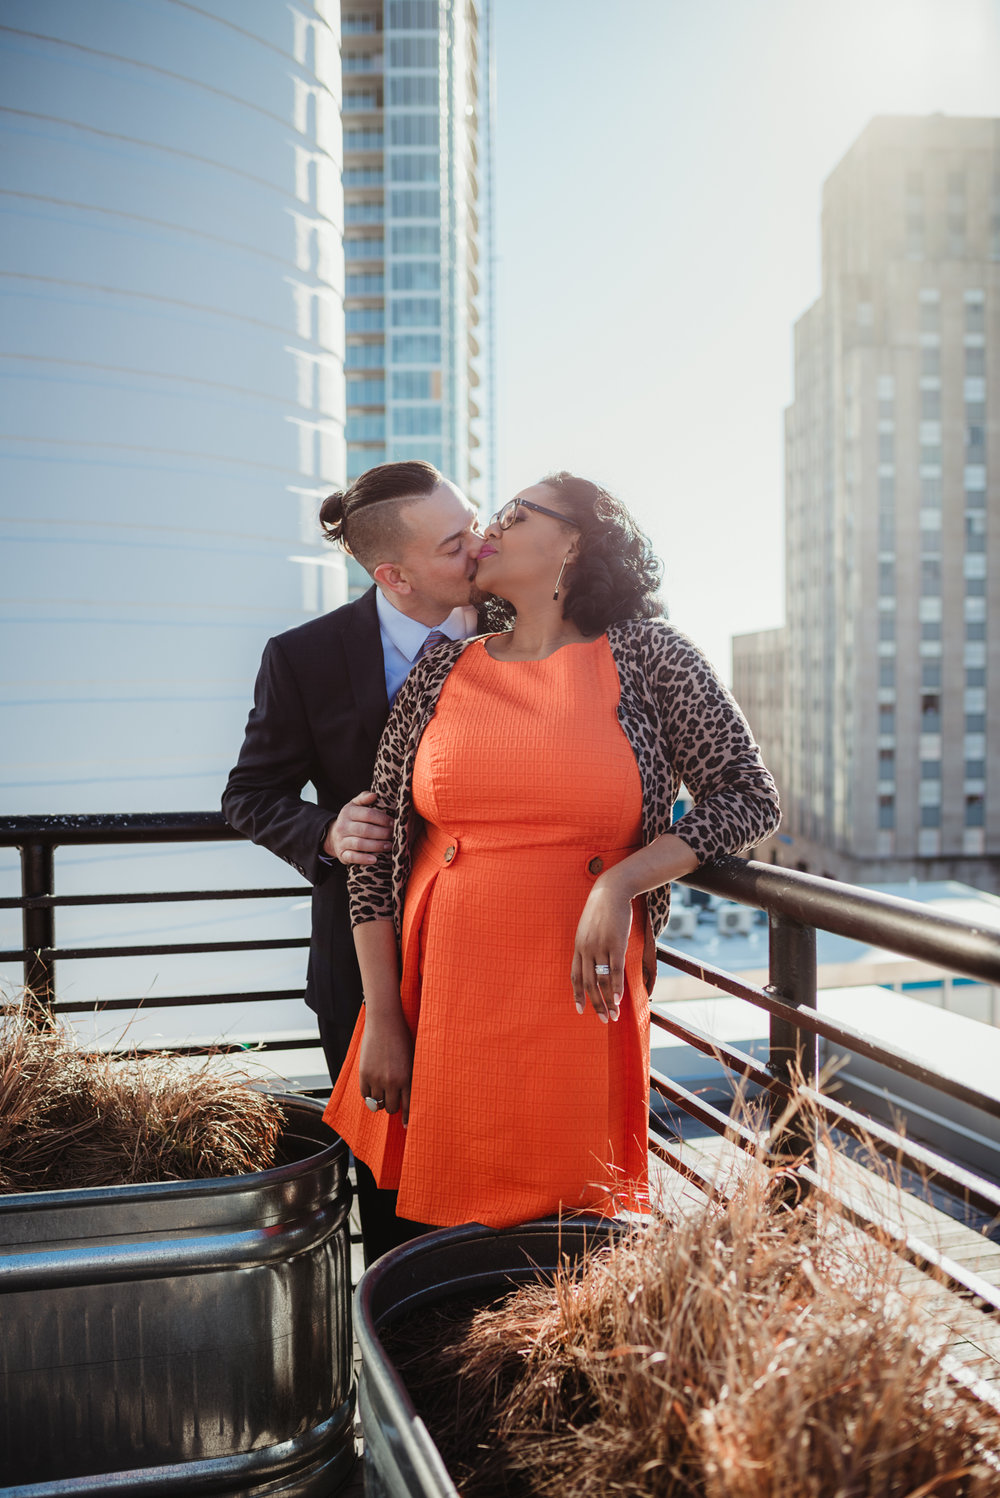 The husband and wife kiss for a picture by Rose Trail Images on the rooftop of the Durham Hotel in Durham, North Carolina.